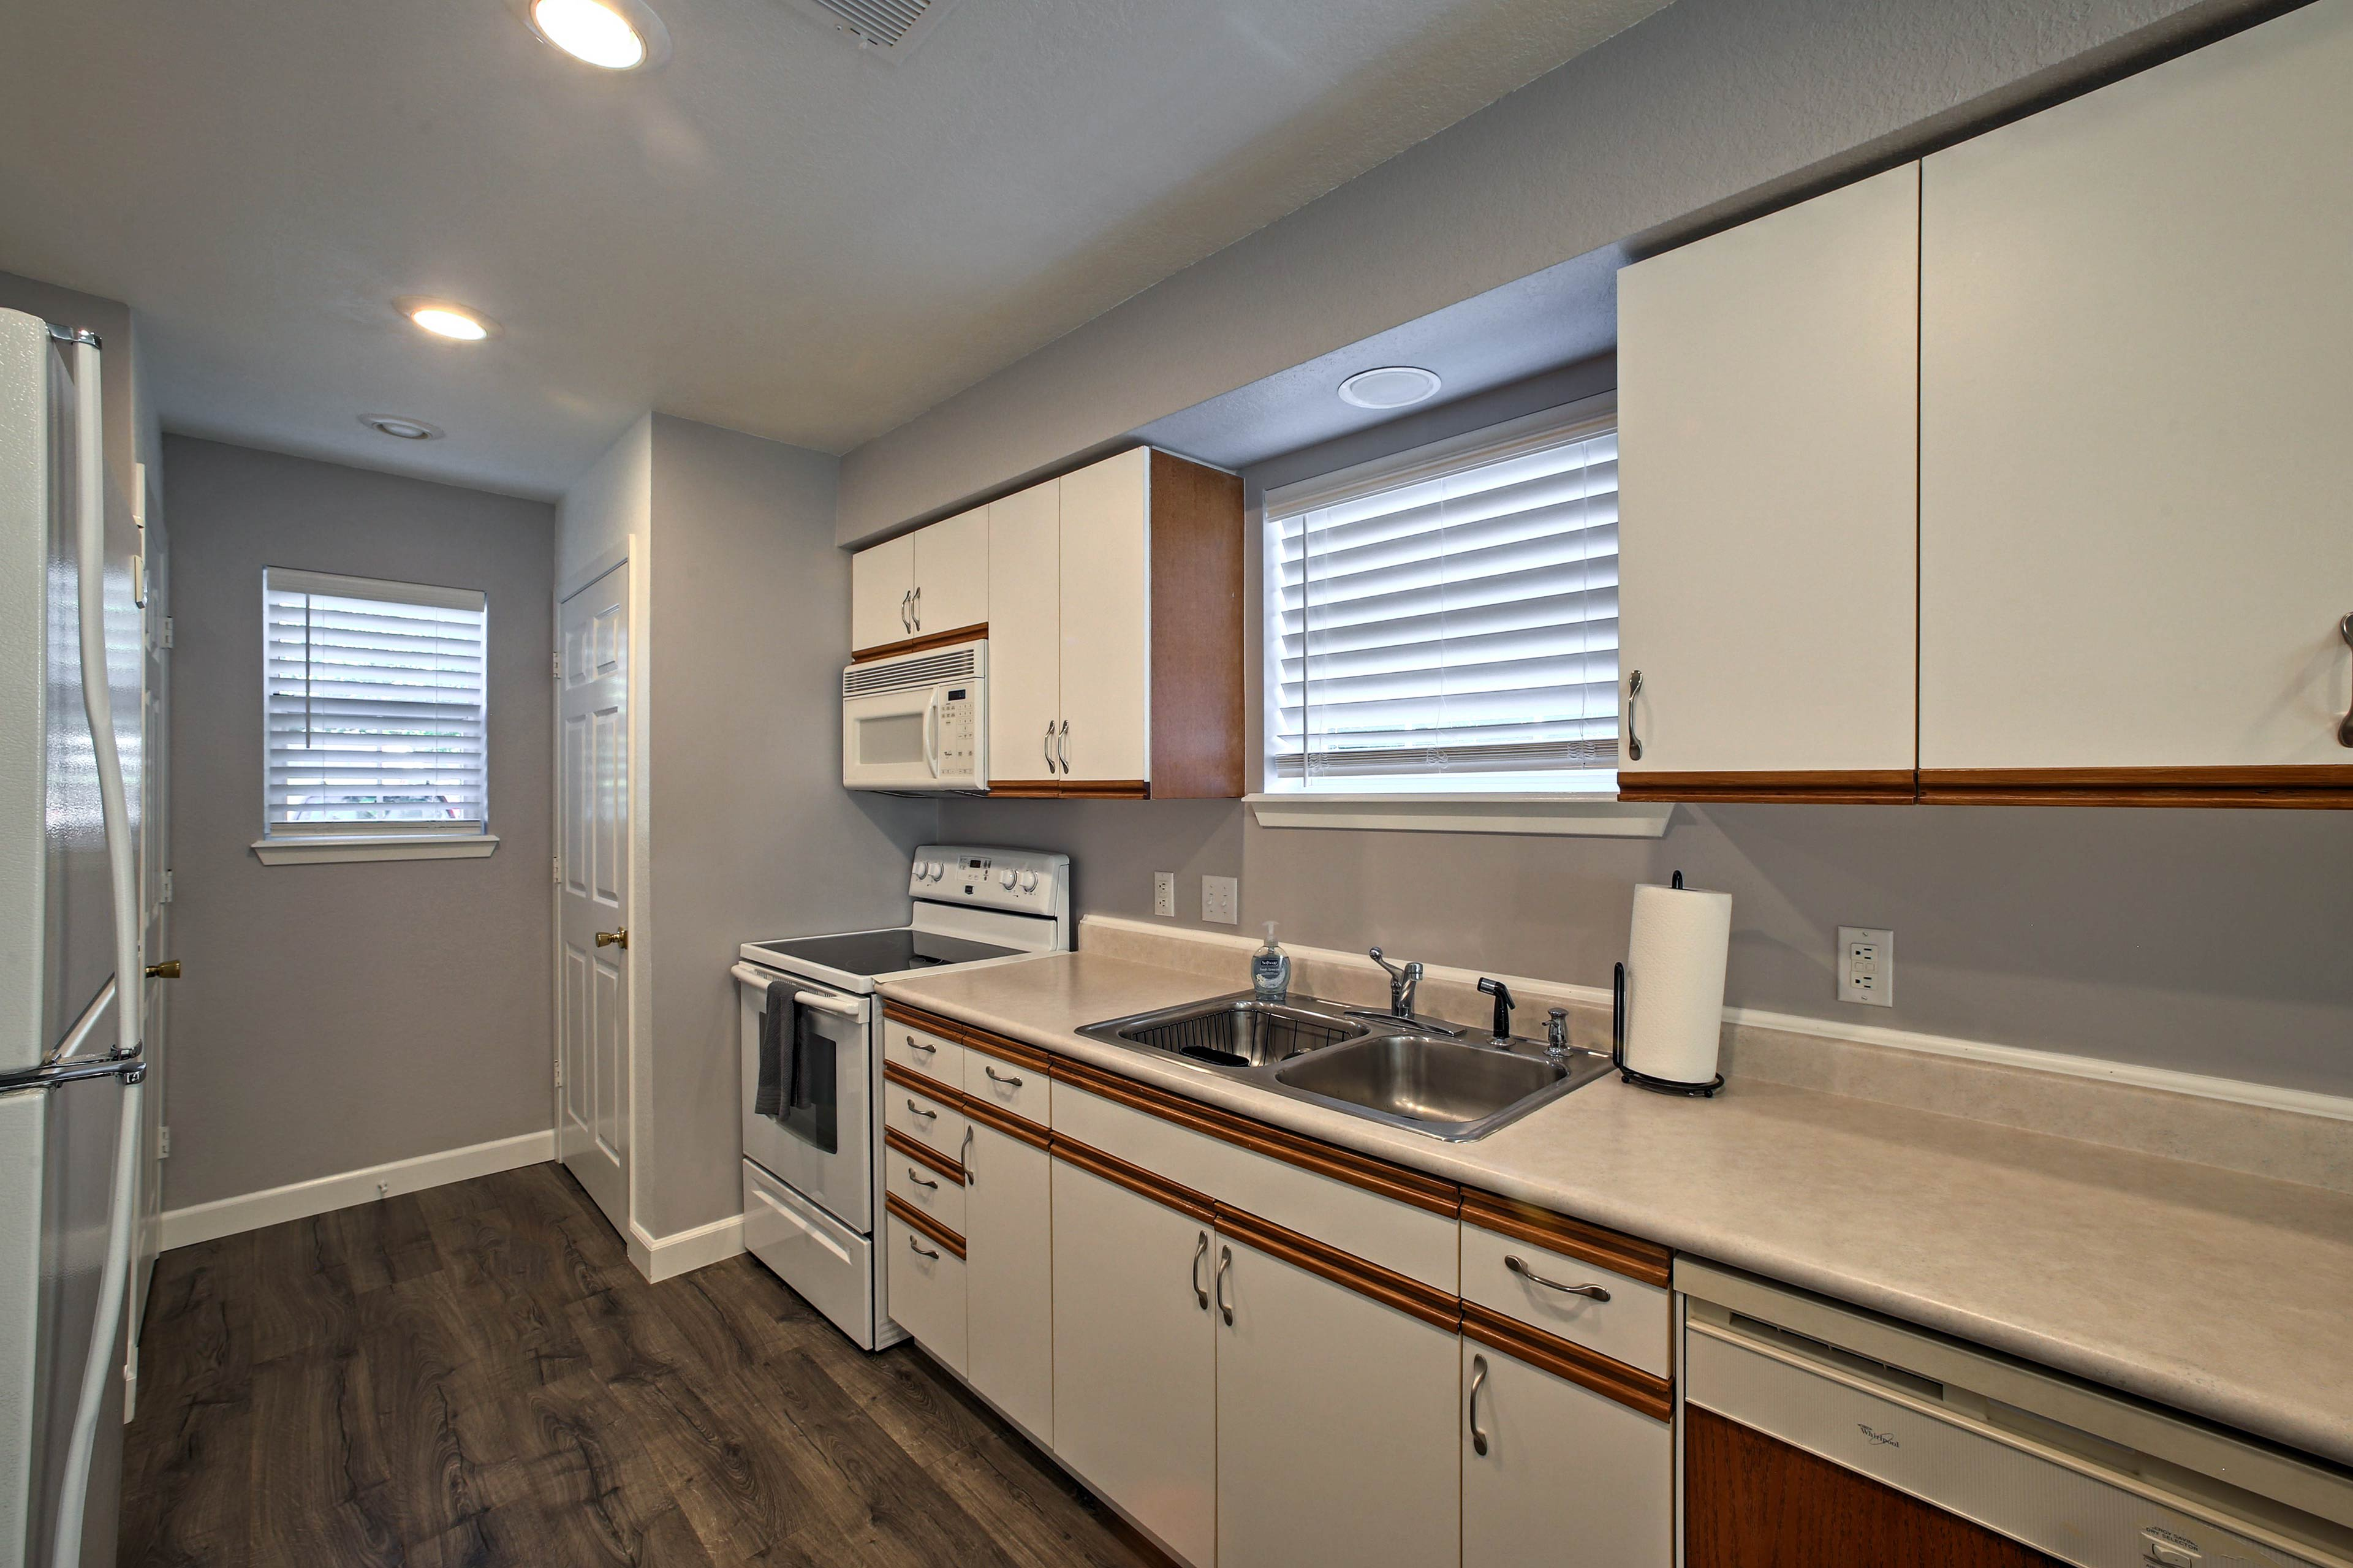 Inside, you'll find over 1,000 square feet of freshly remodeled living space.